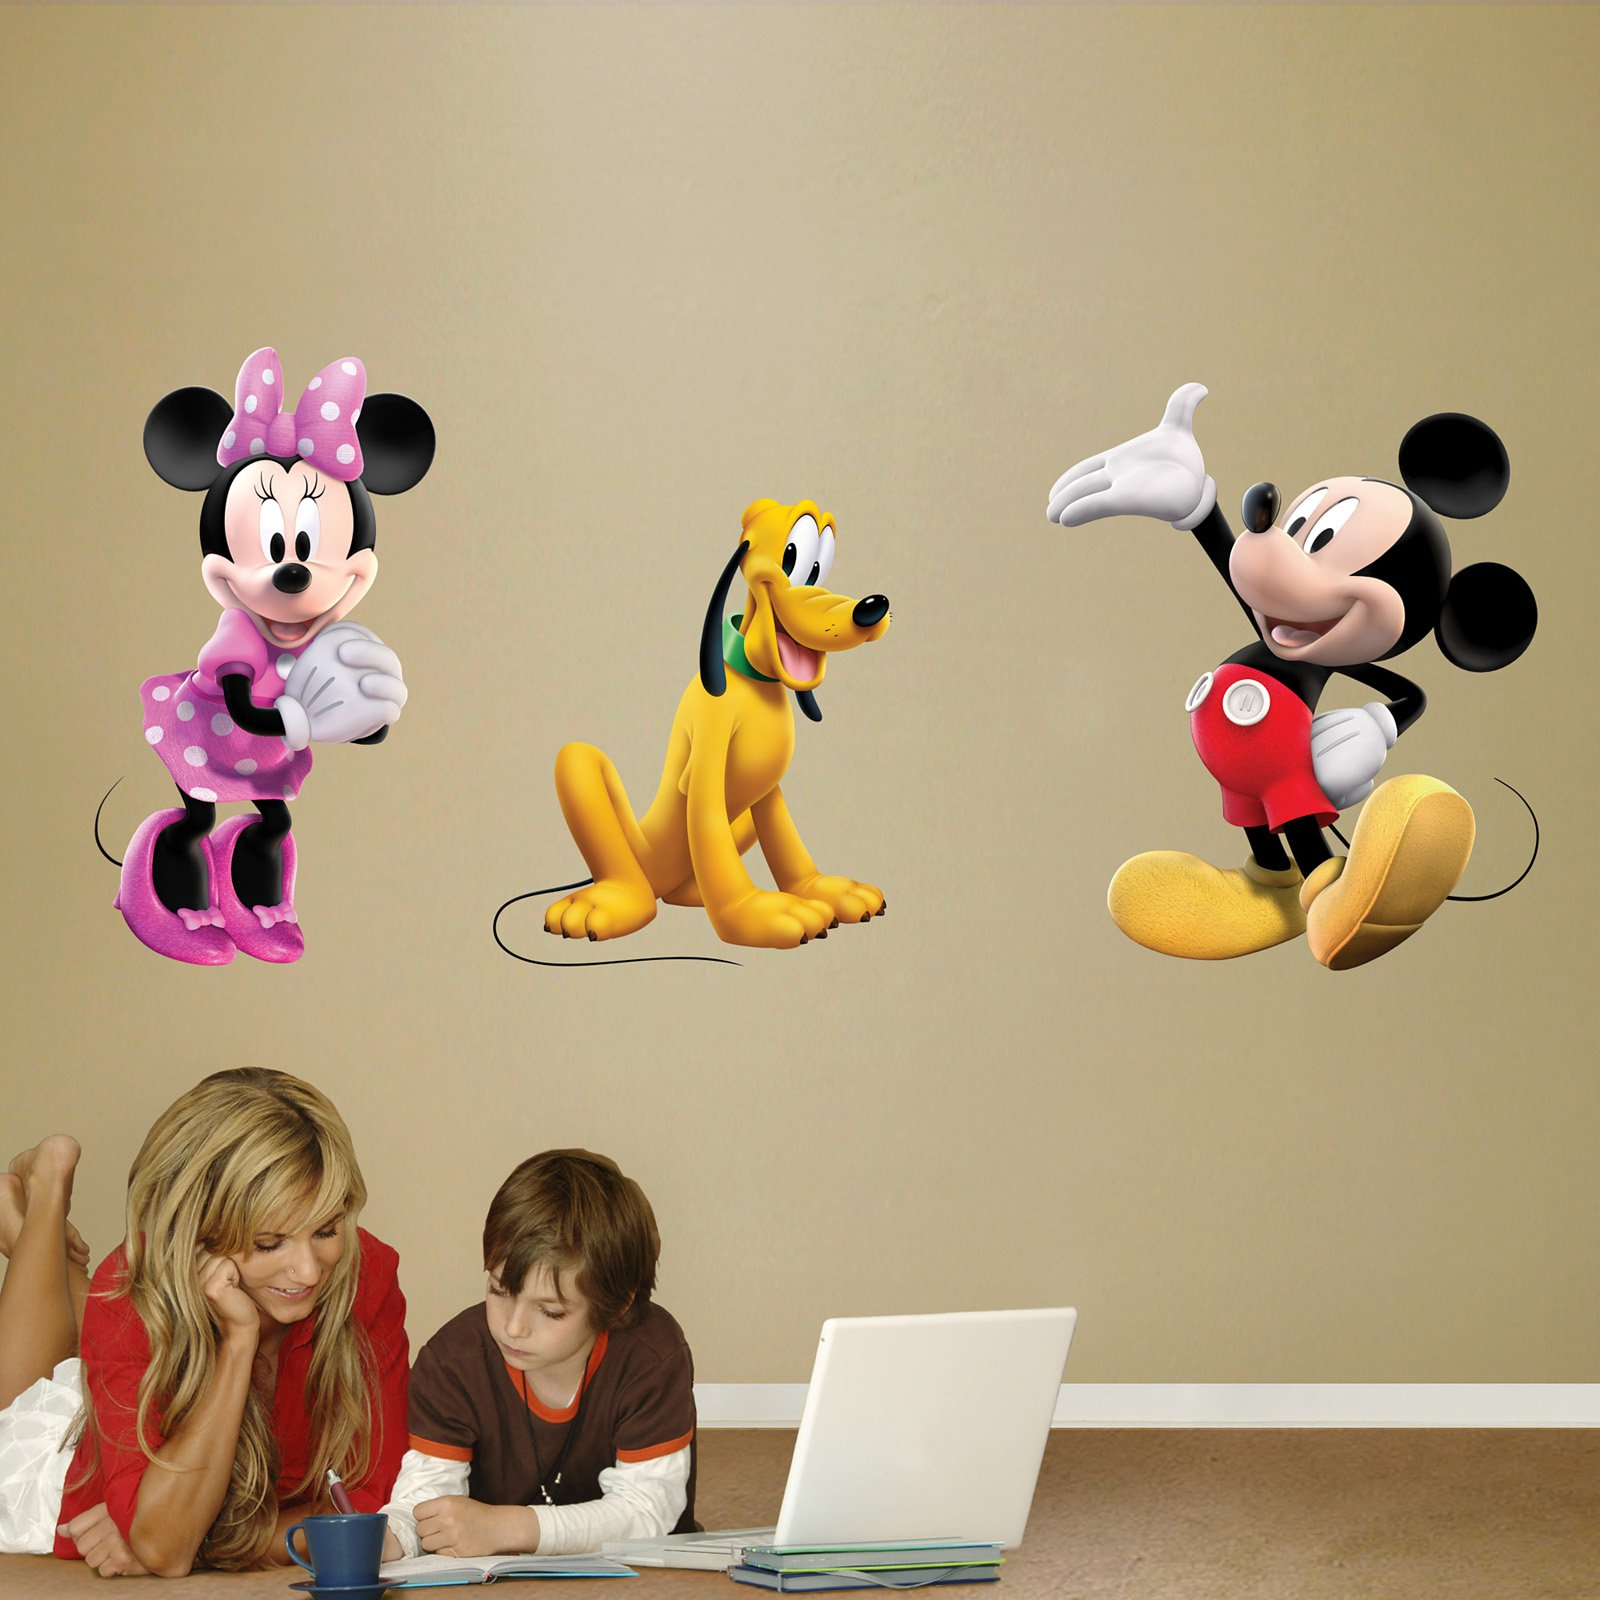 Disney Mickey Mouse and Friends Wall Decal